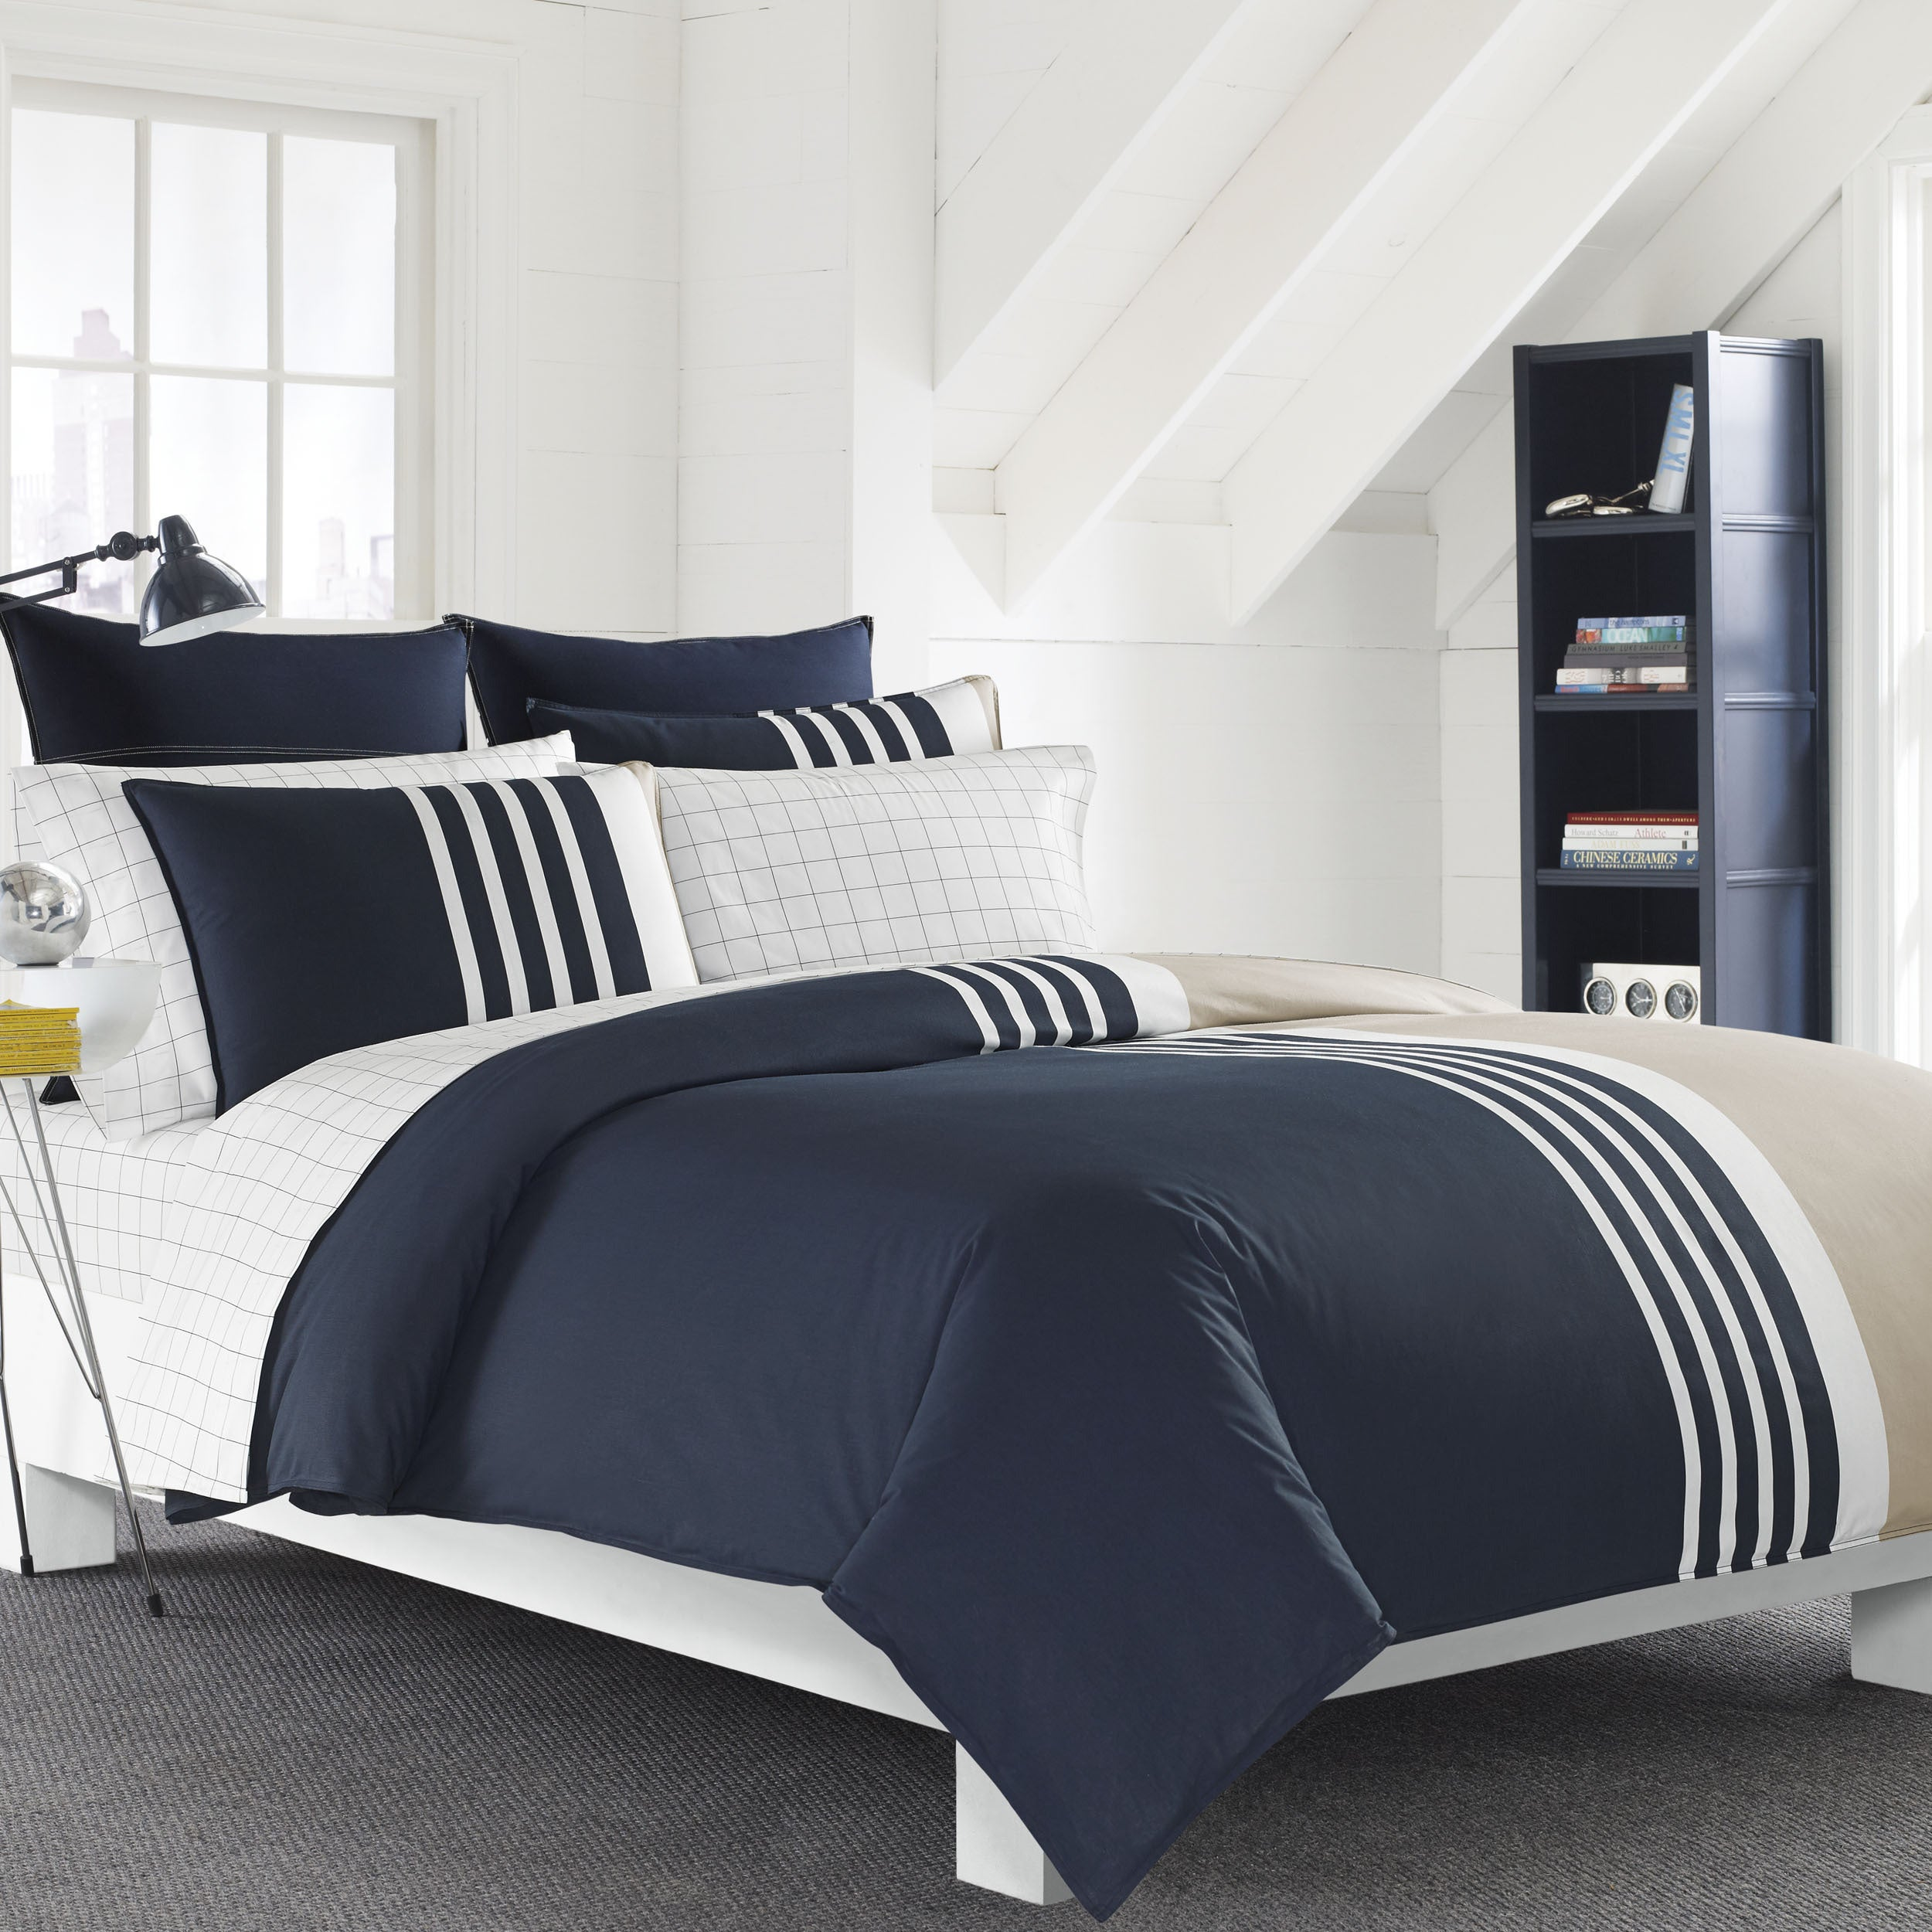 in bedding bag set shipping bath jefferson a square overstock bed on product com free comforter